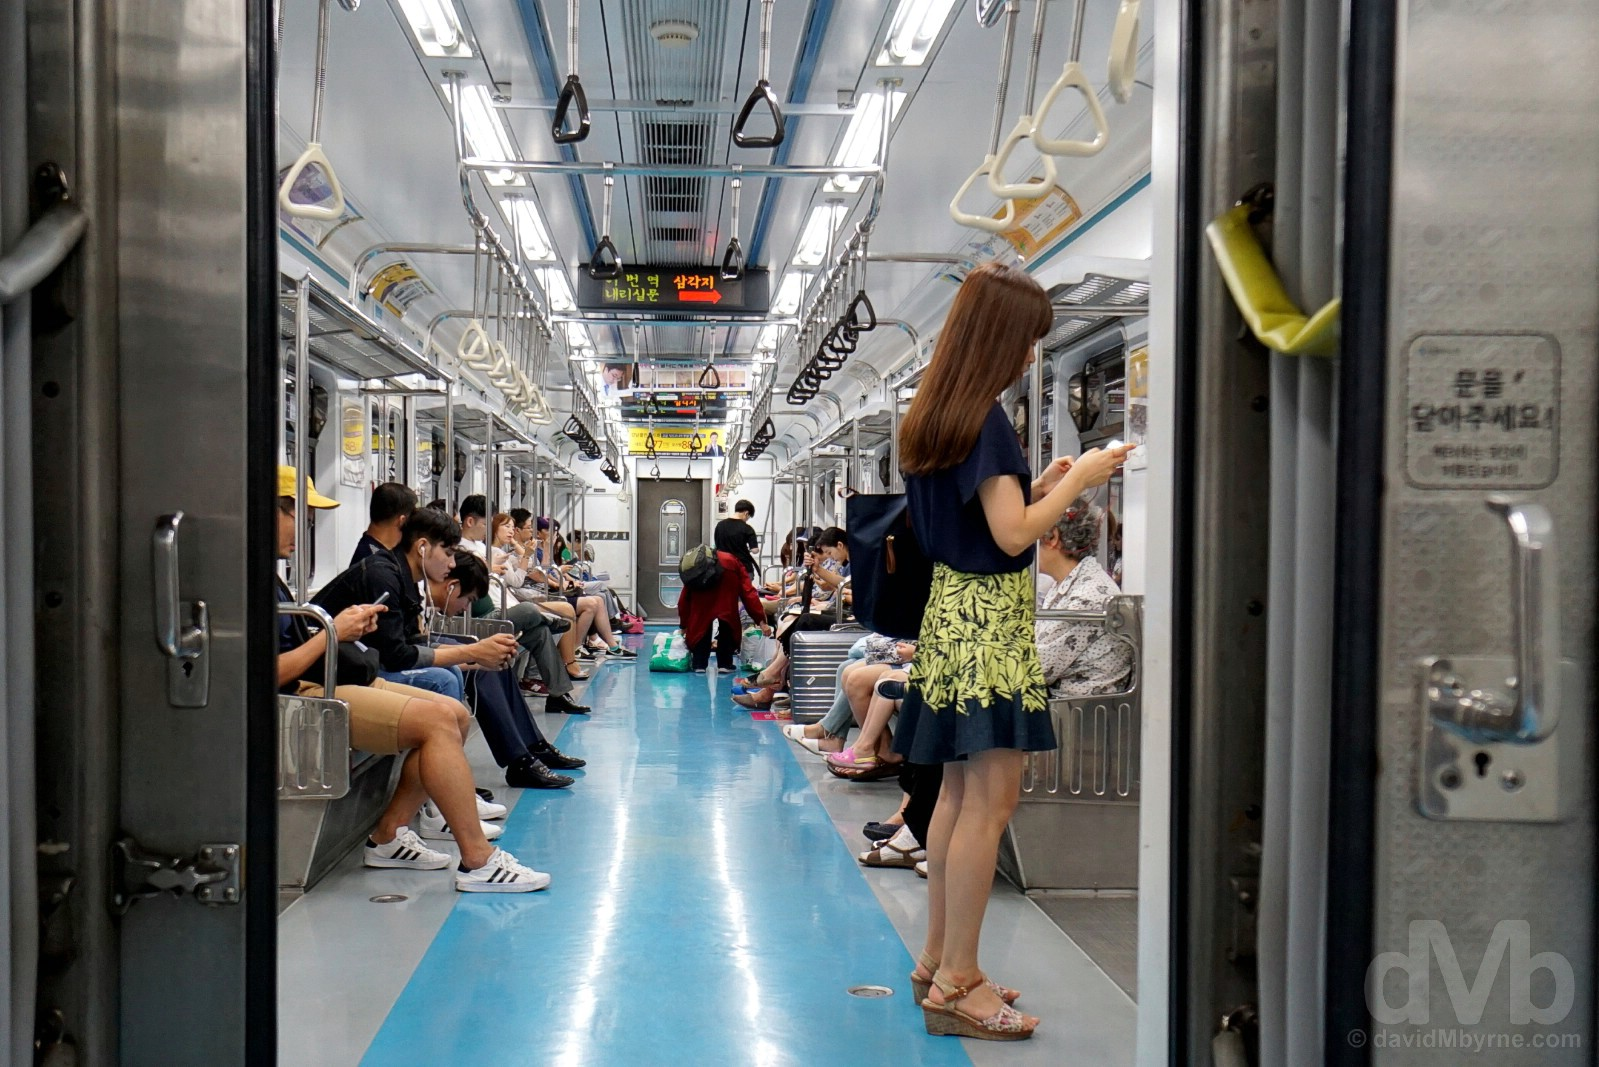 Riding the metro somewhere under the streets of Seoul, South Korea. July 29, 2017.